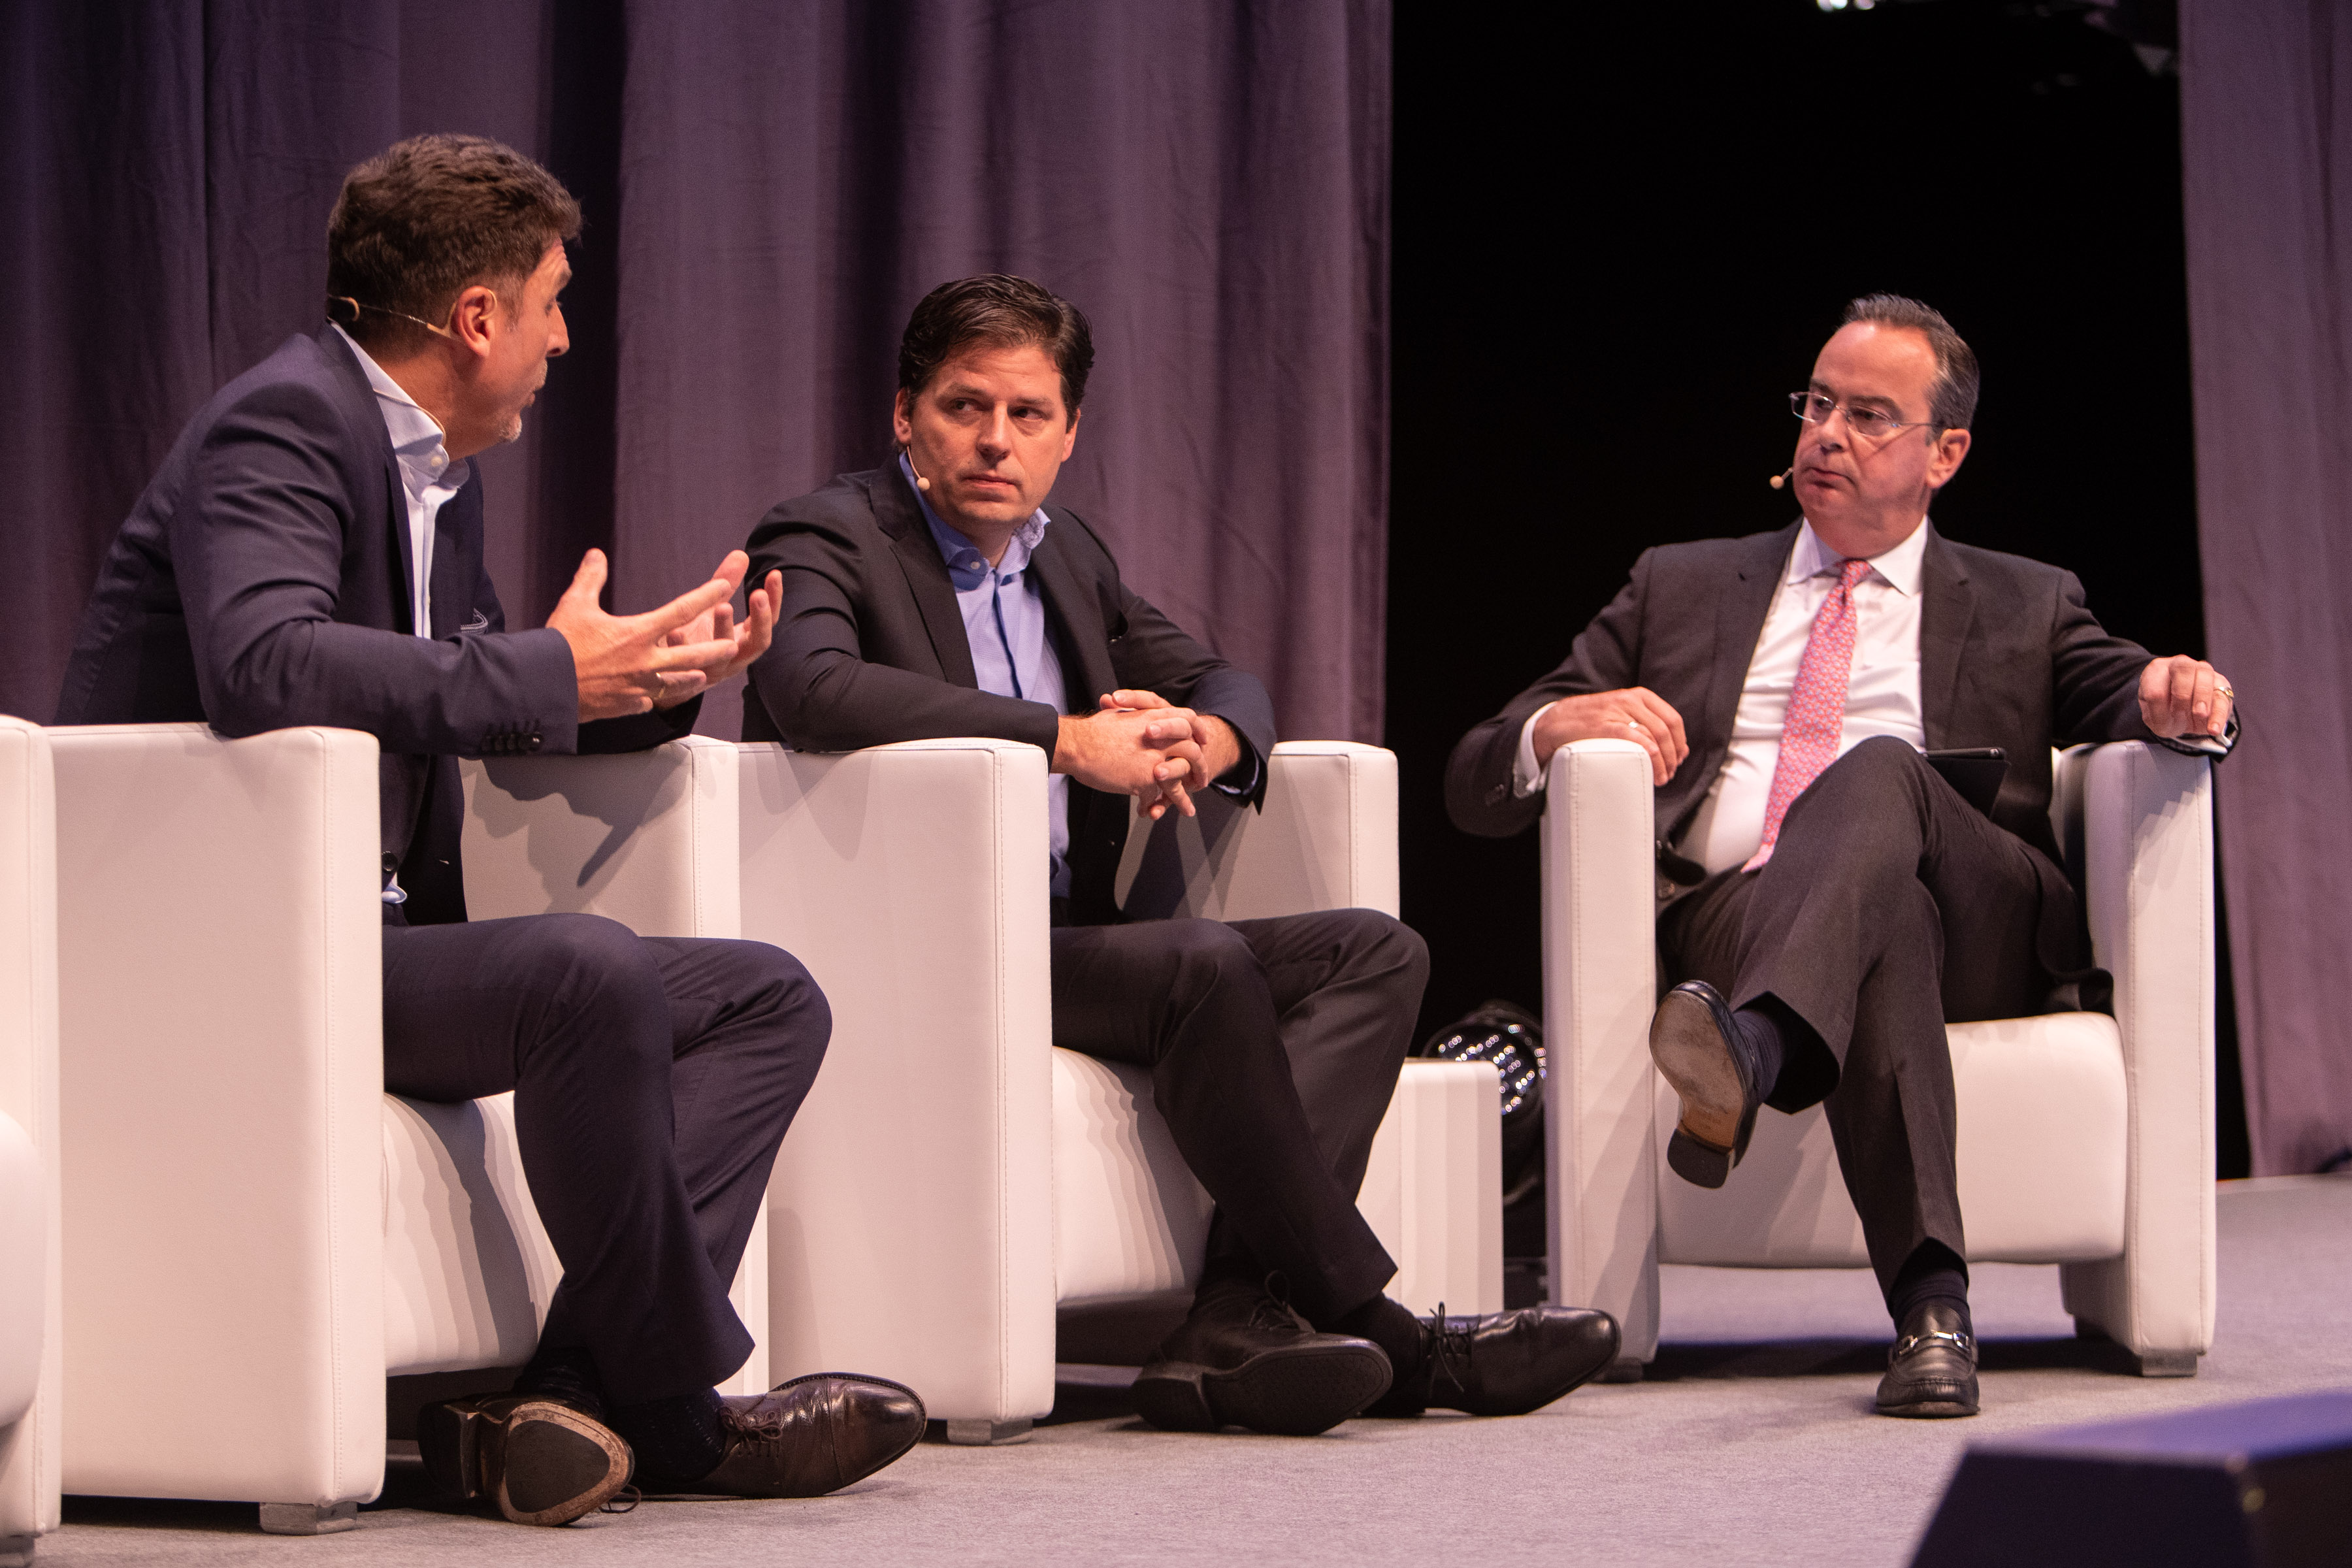 Richard moderating at the Global Business Travel Association Conference in Munich in November 2019